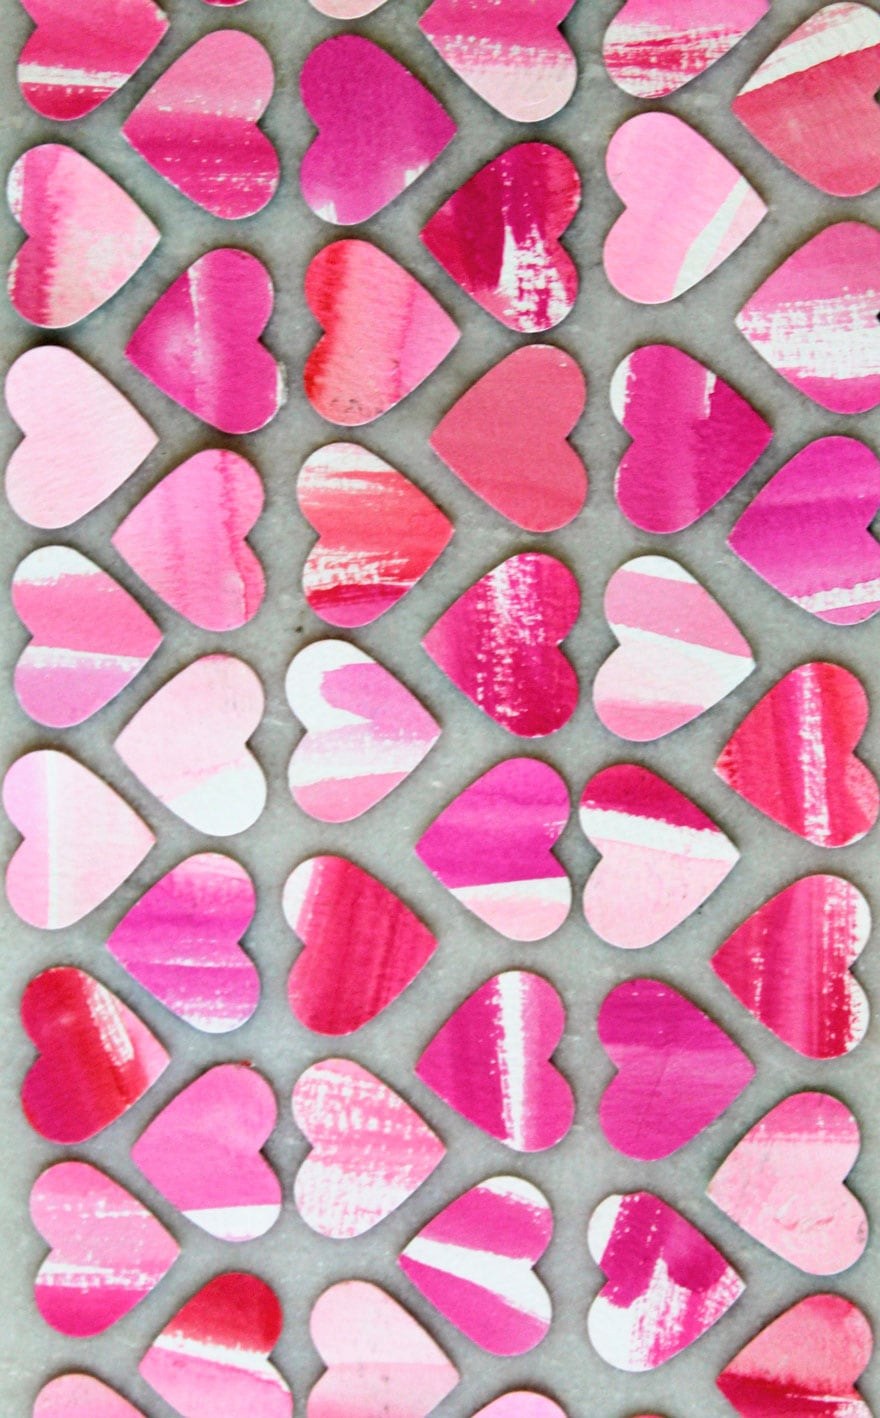 pink, red, white patterns on miniature heart cutouts on marble background